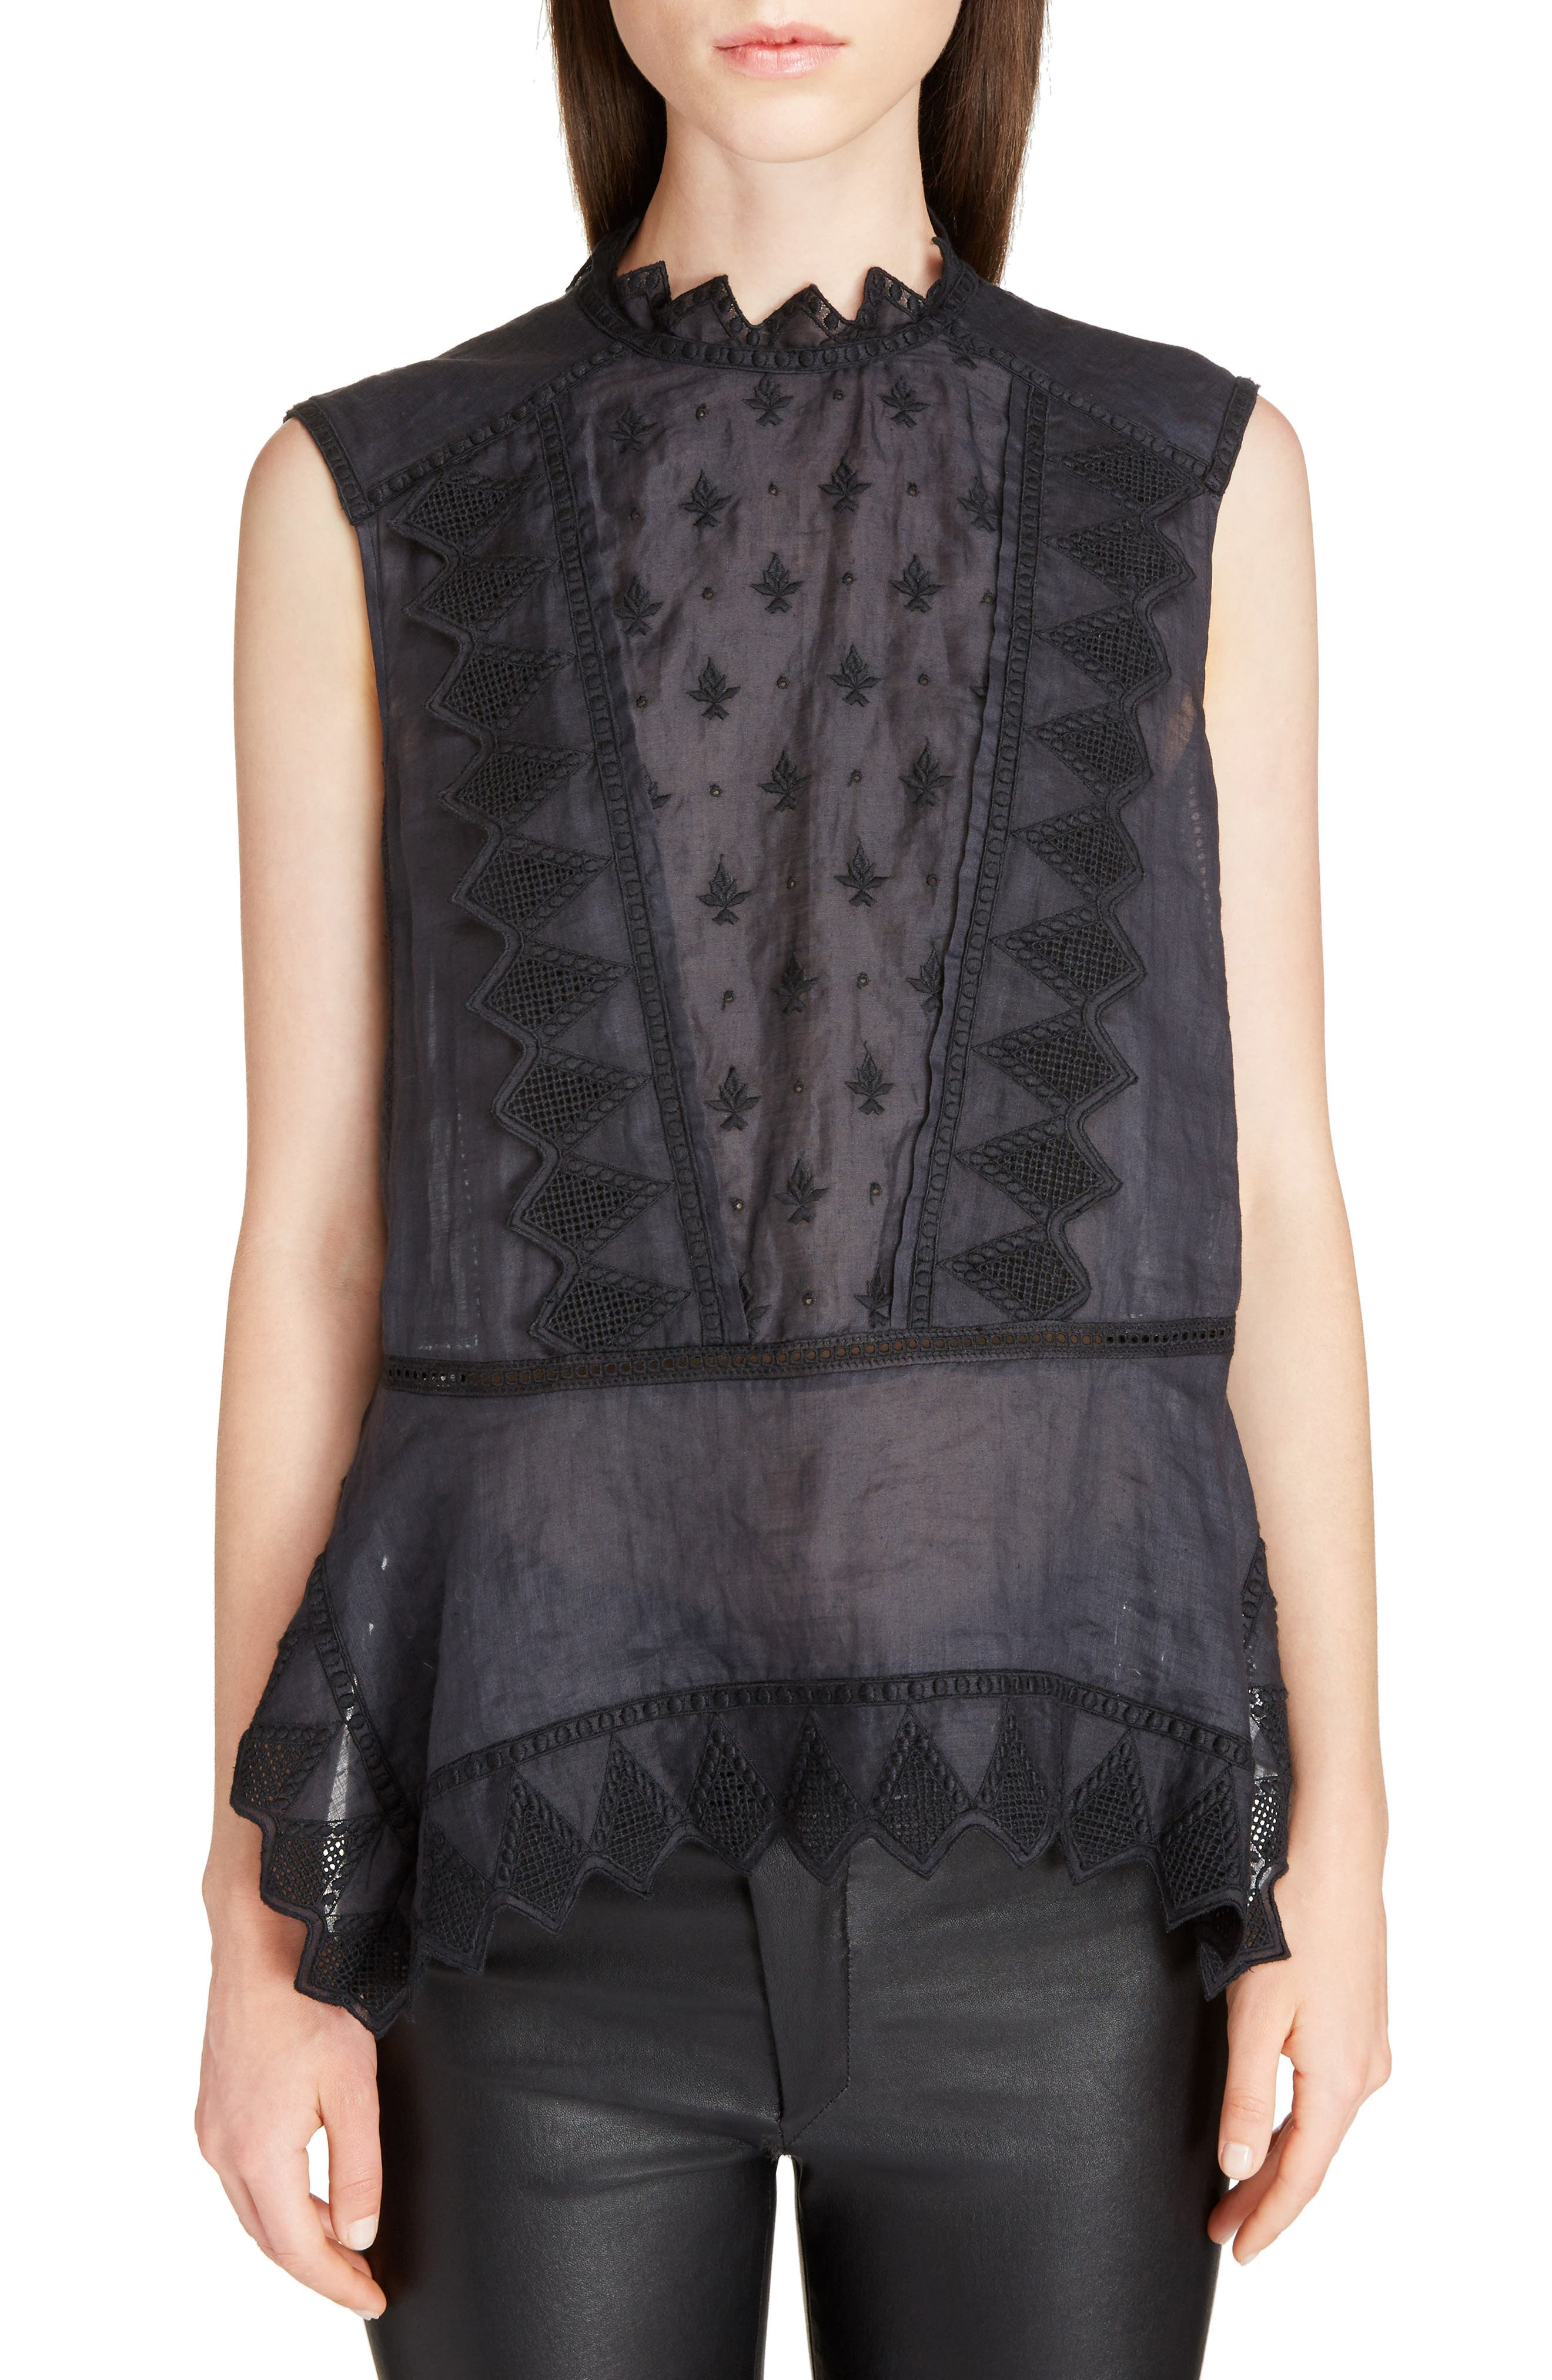 Isabel Marant Nust Embroidered Top